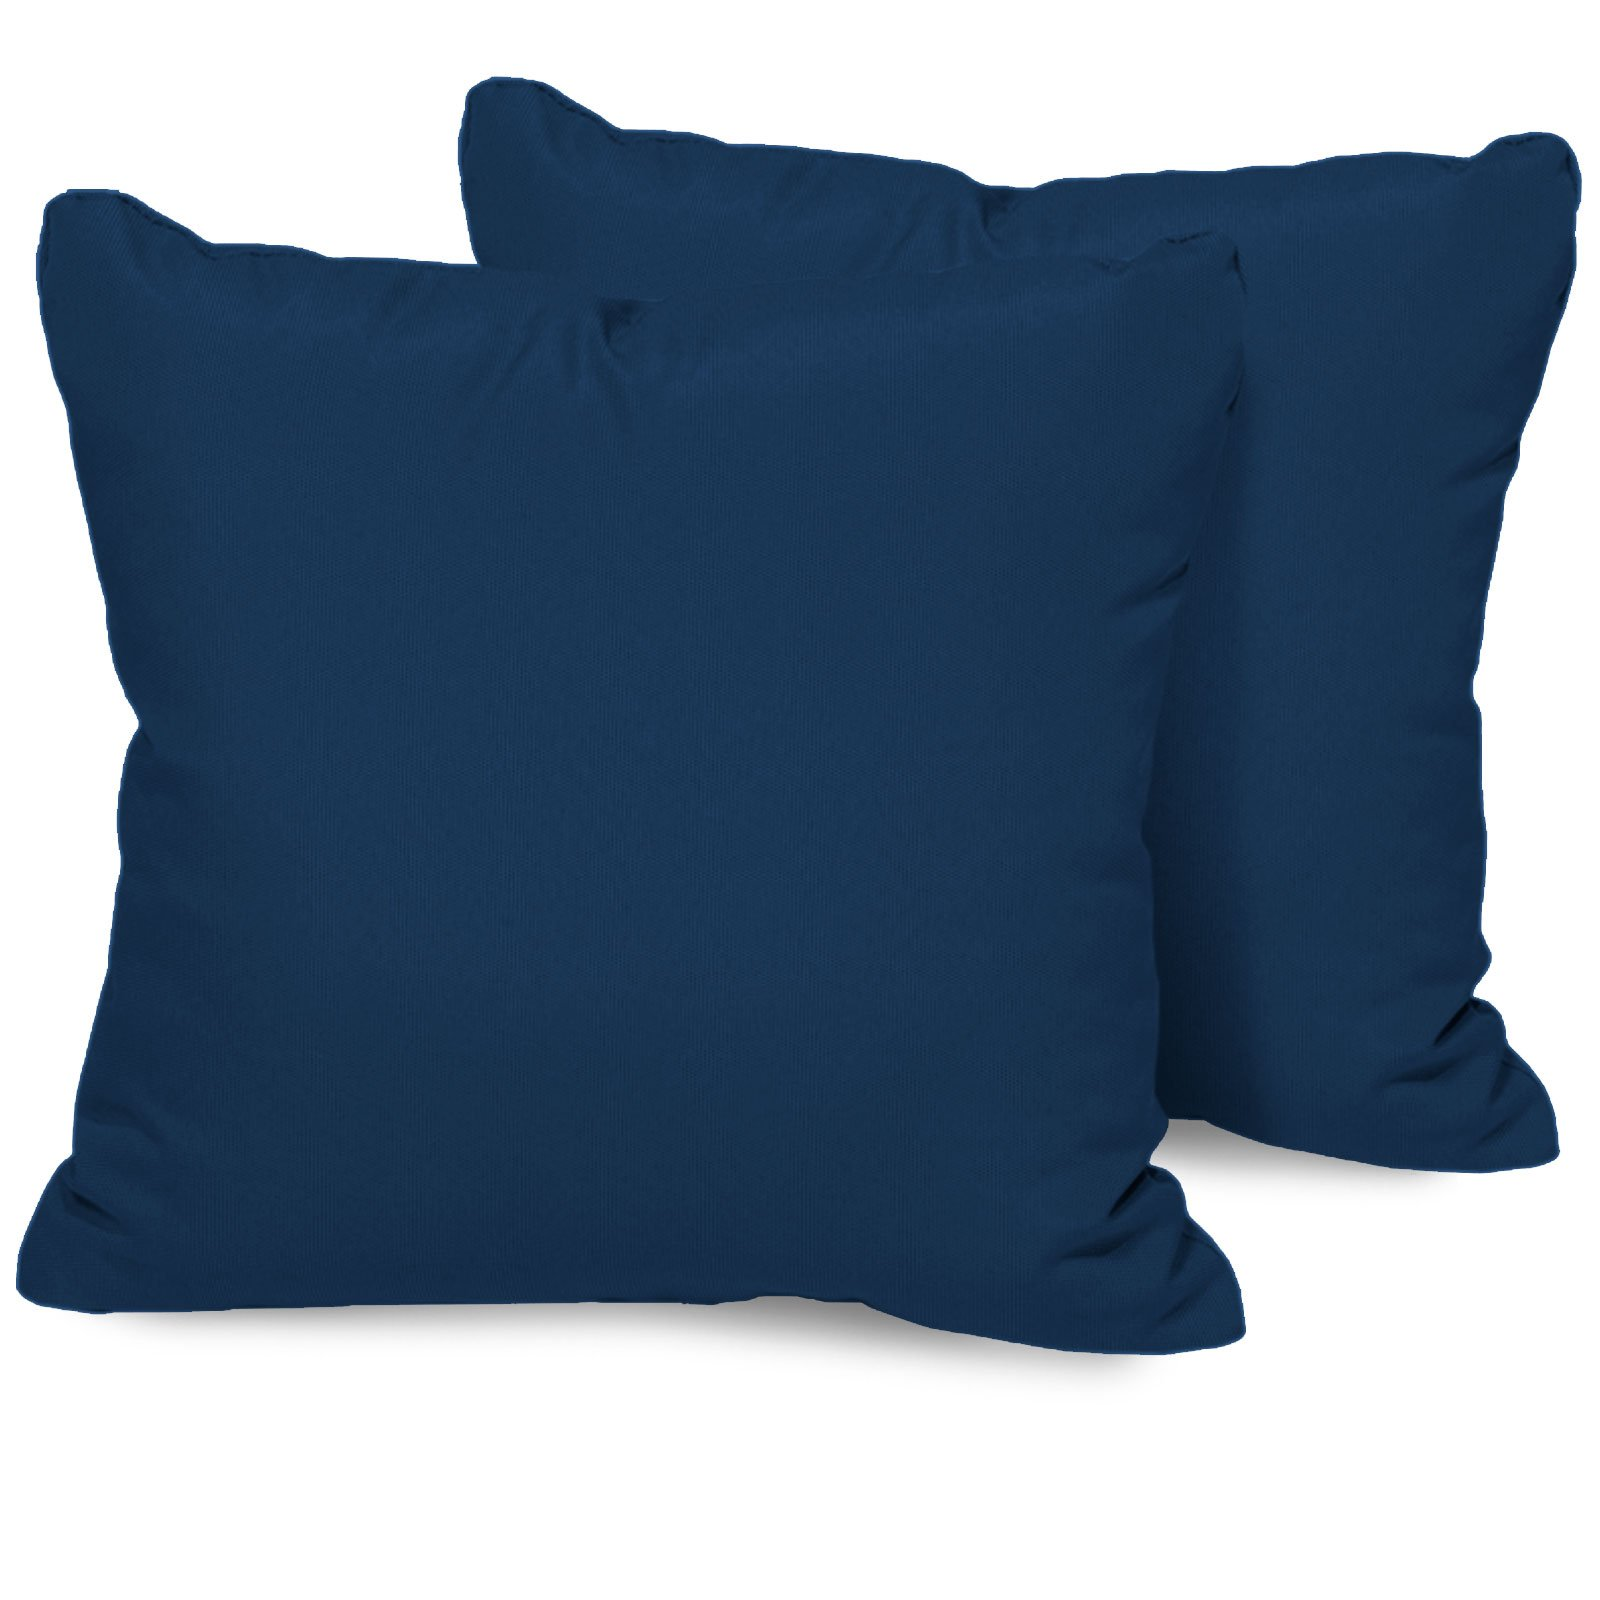 TK Classics PILLOW-NAVY-S-2x Outdoor Square Throw Pillows, Set of 2, Navy by TK Classics